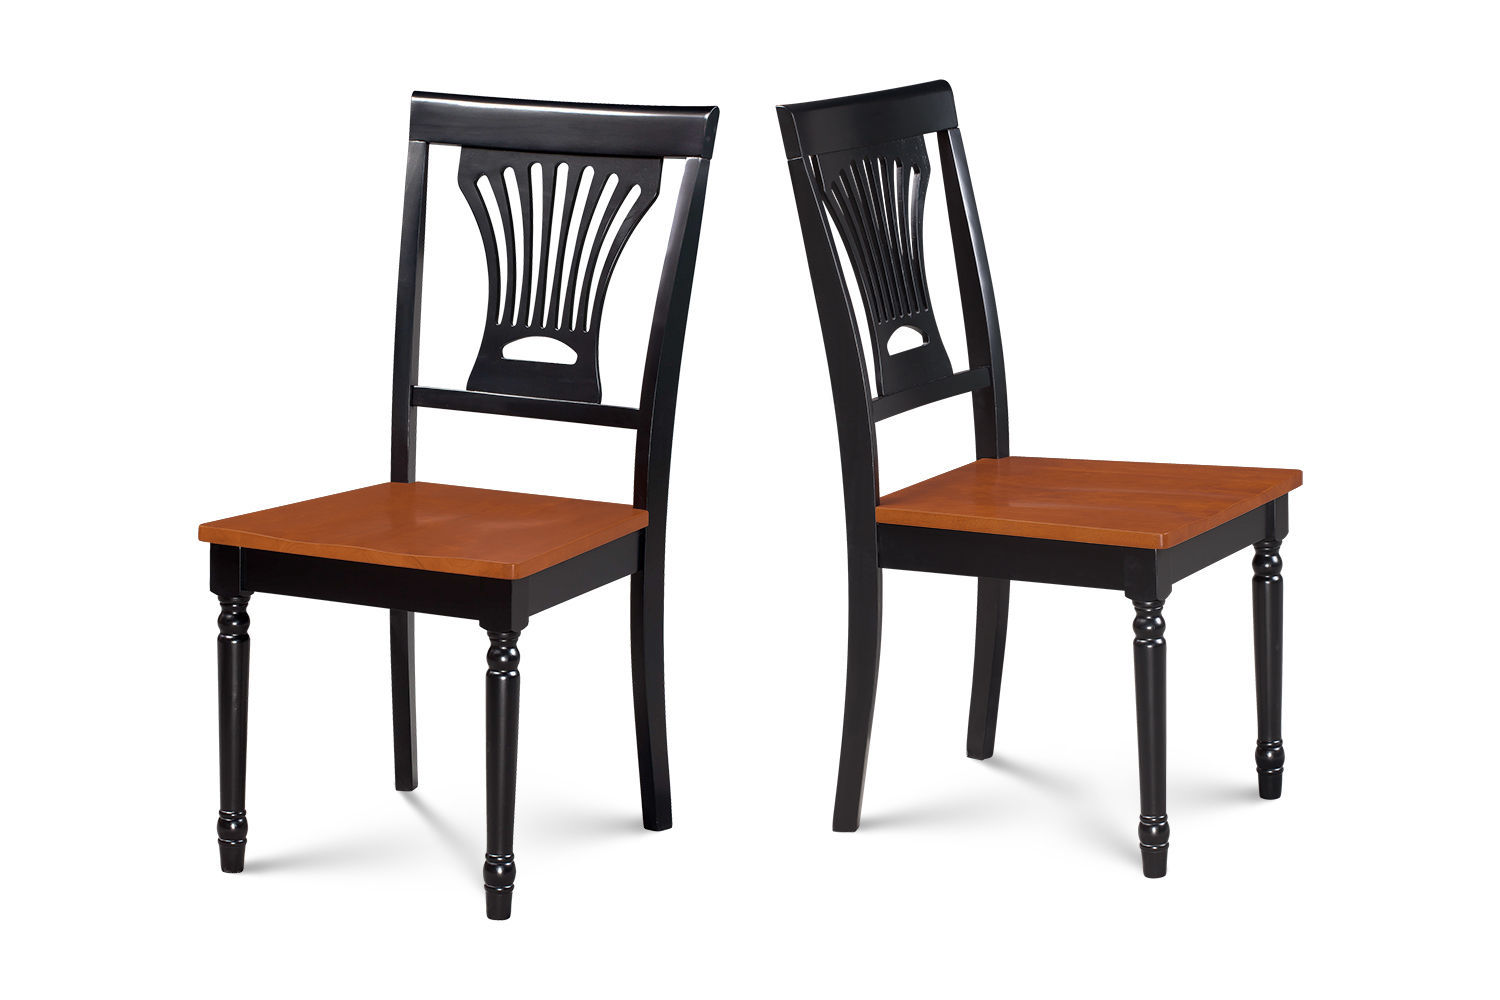 SET OF 4 DINING KITCHEN SIDE CHAIR W. WOODEN SEAT IN BLACK & CHERRY FINISH